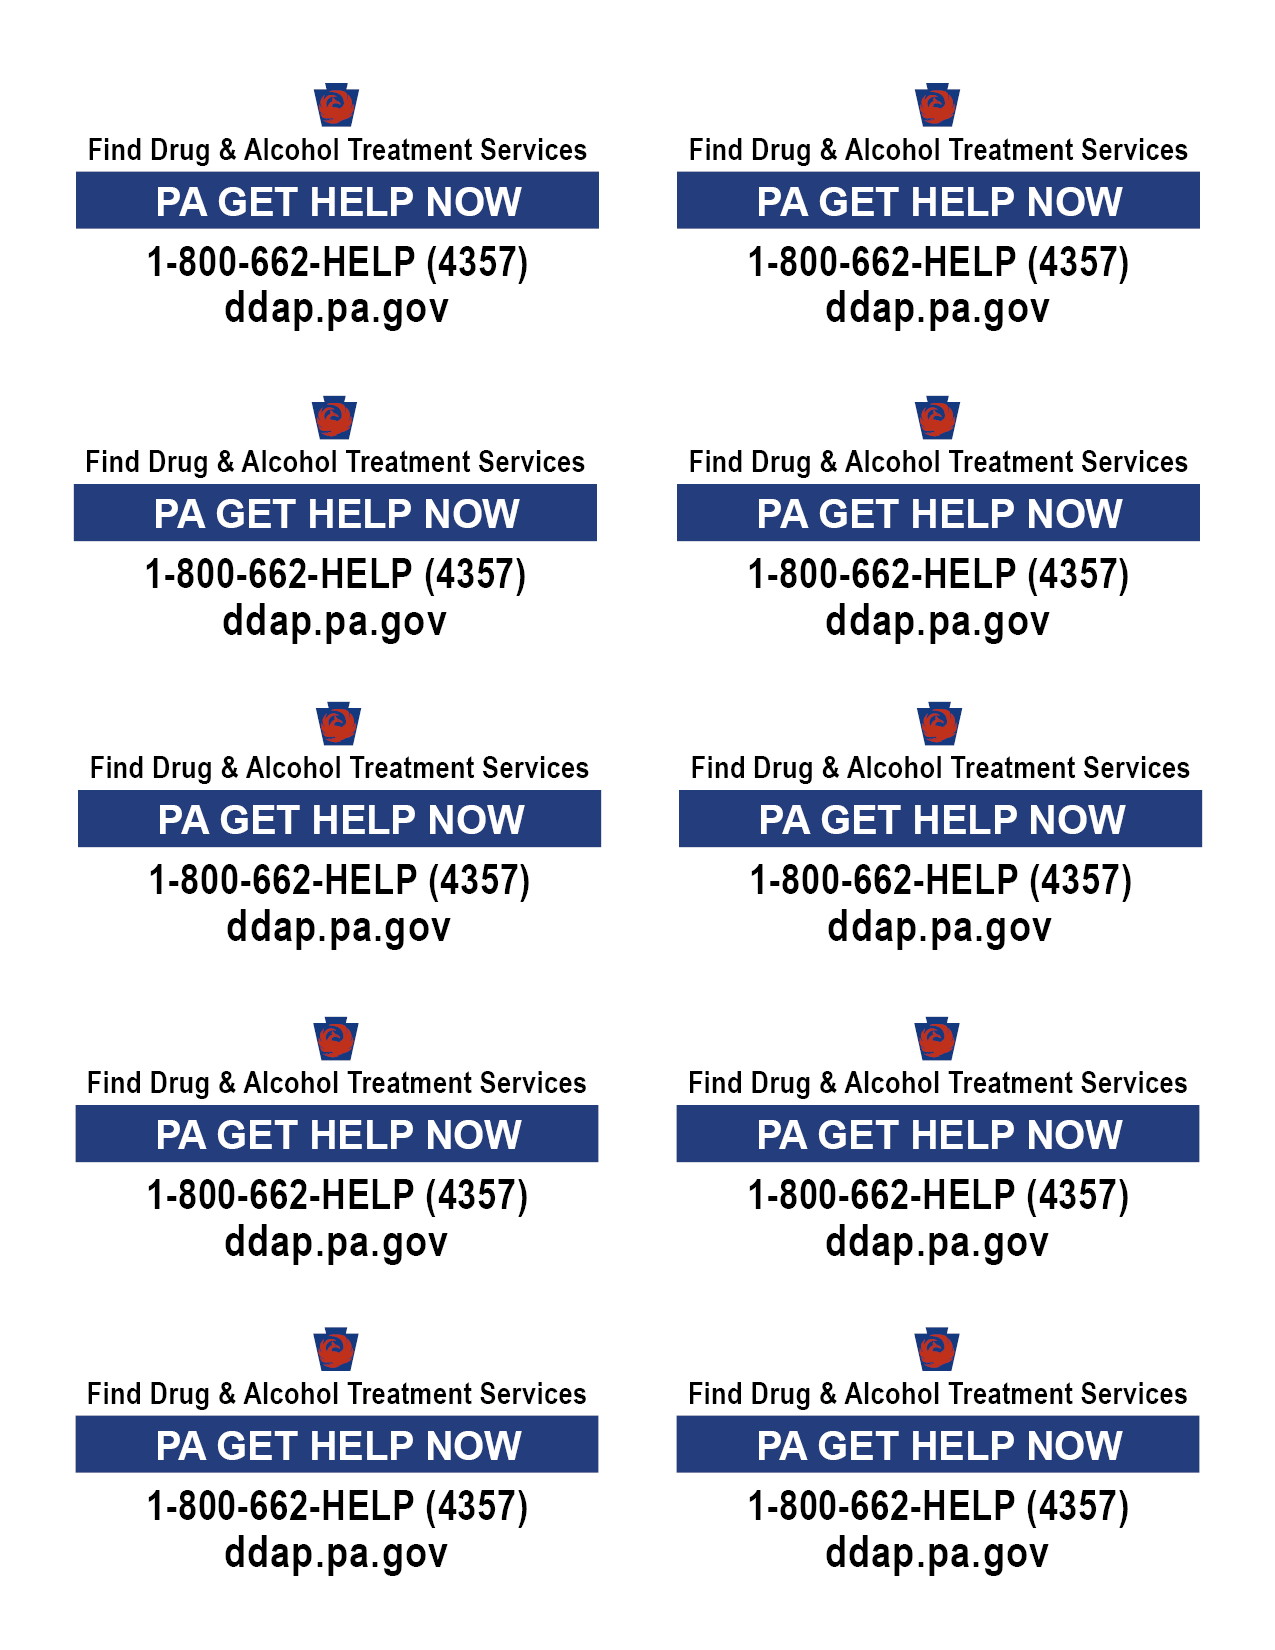 Get Help Now rack cards for counties in color